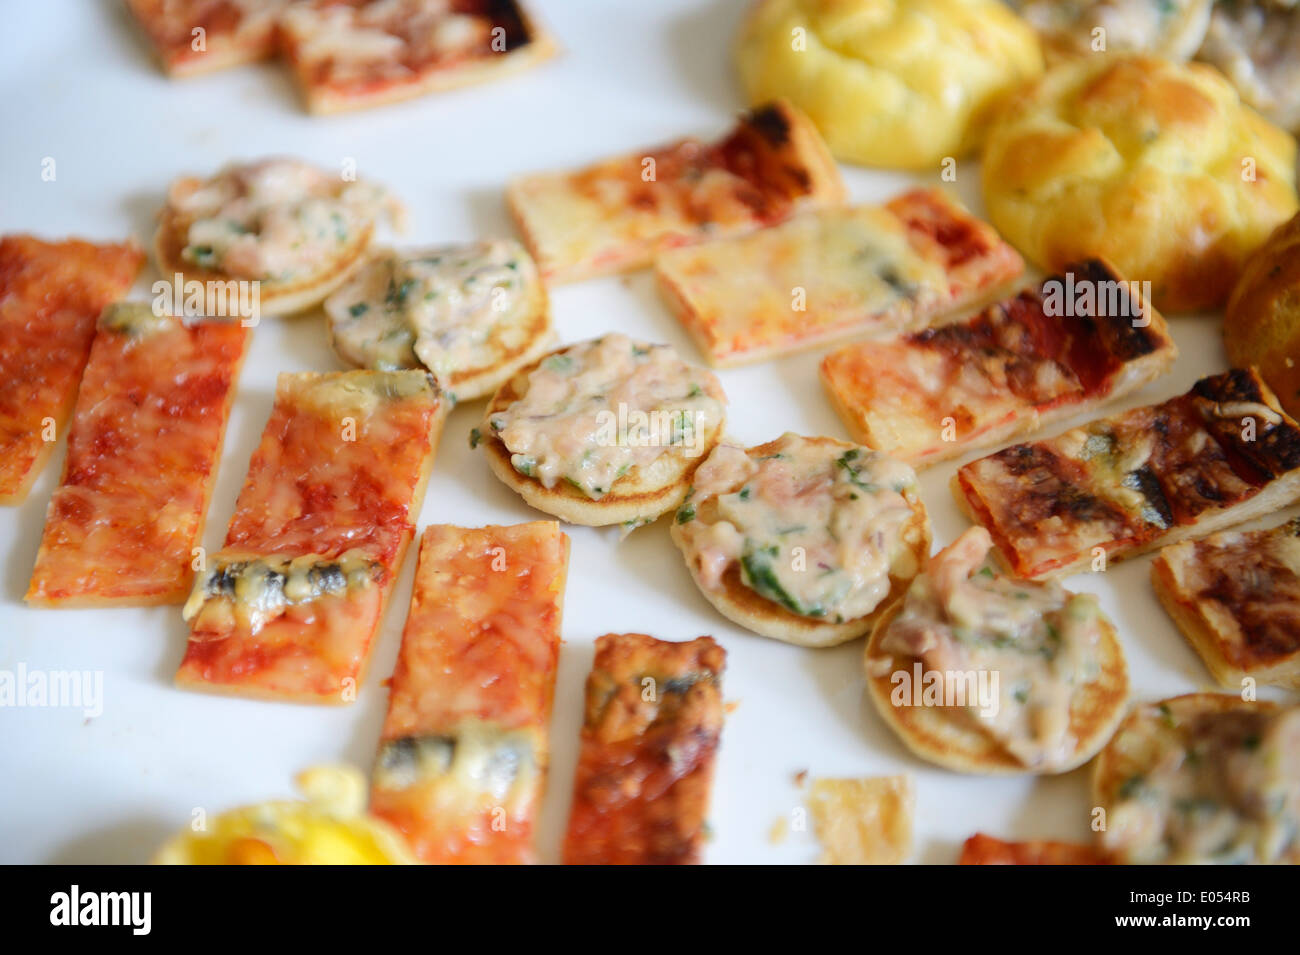 Stock photo of hors d'oeuvres being served at a celebration - Stock Image